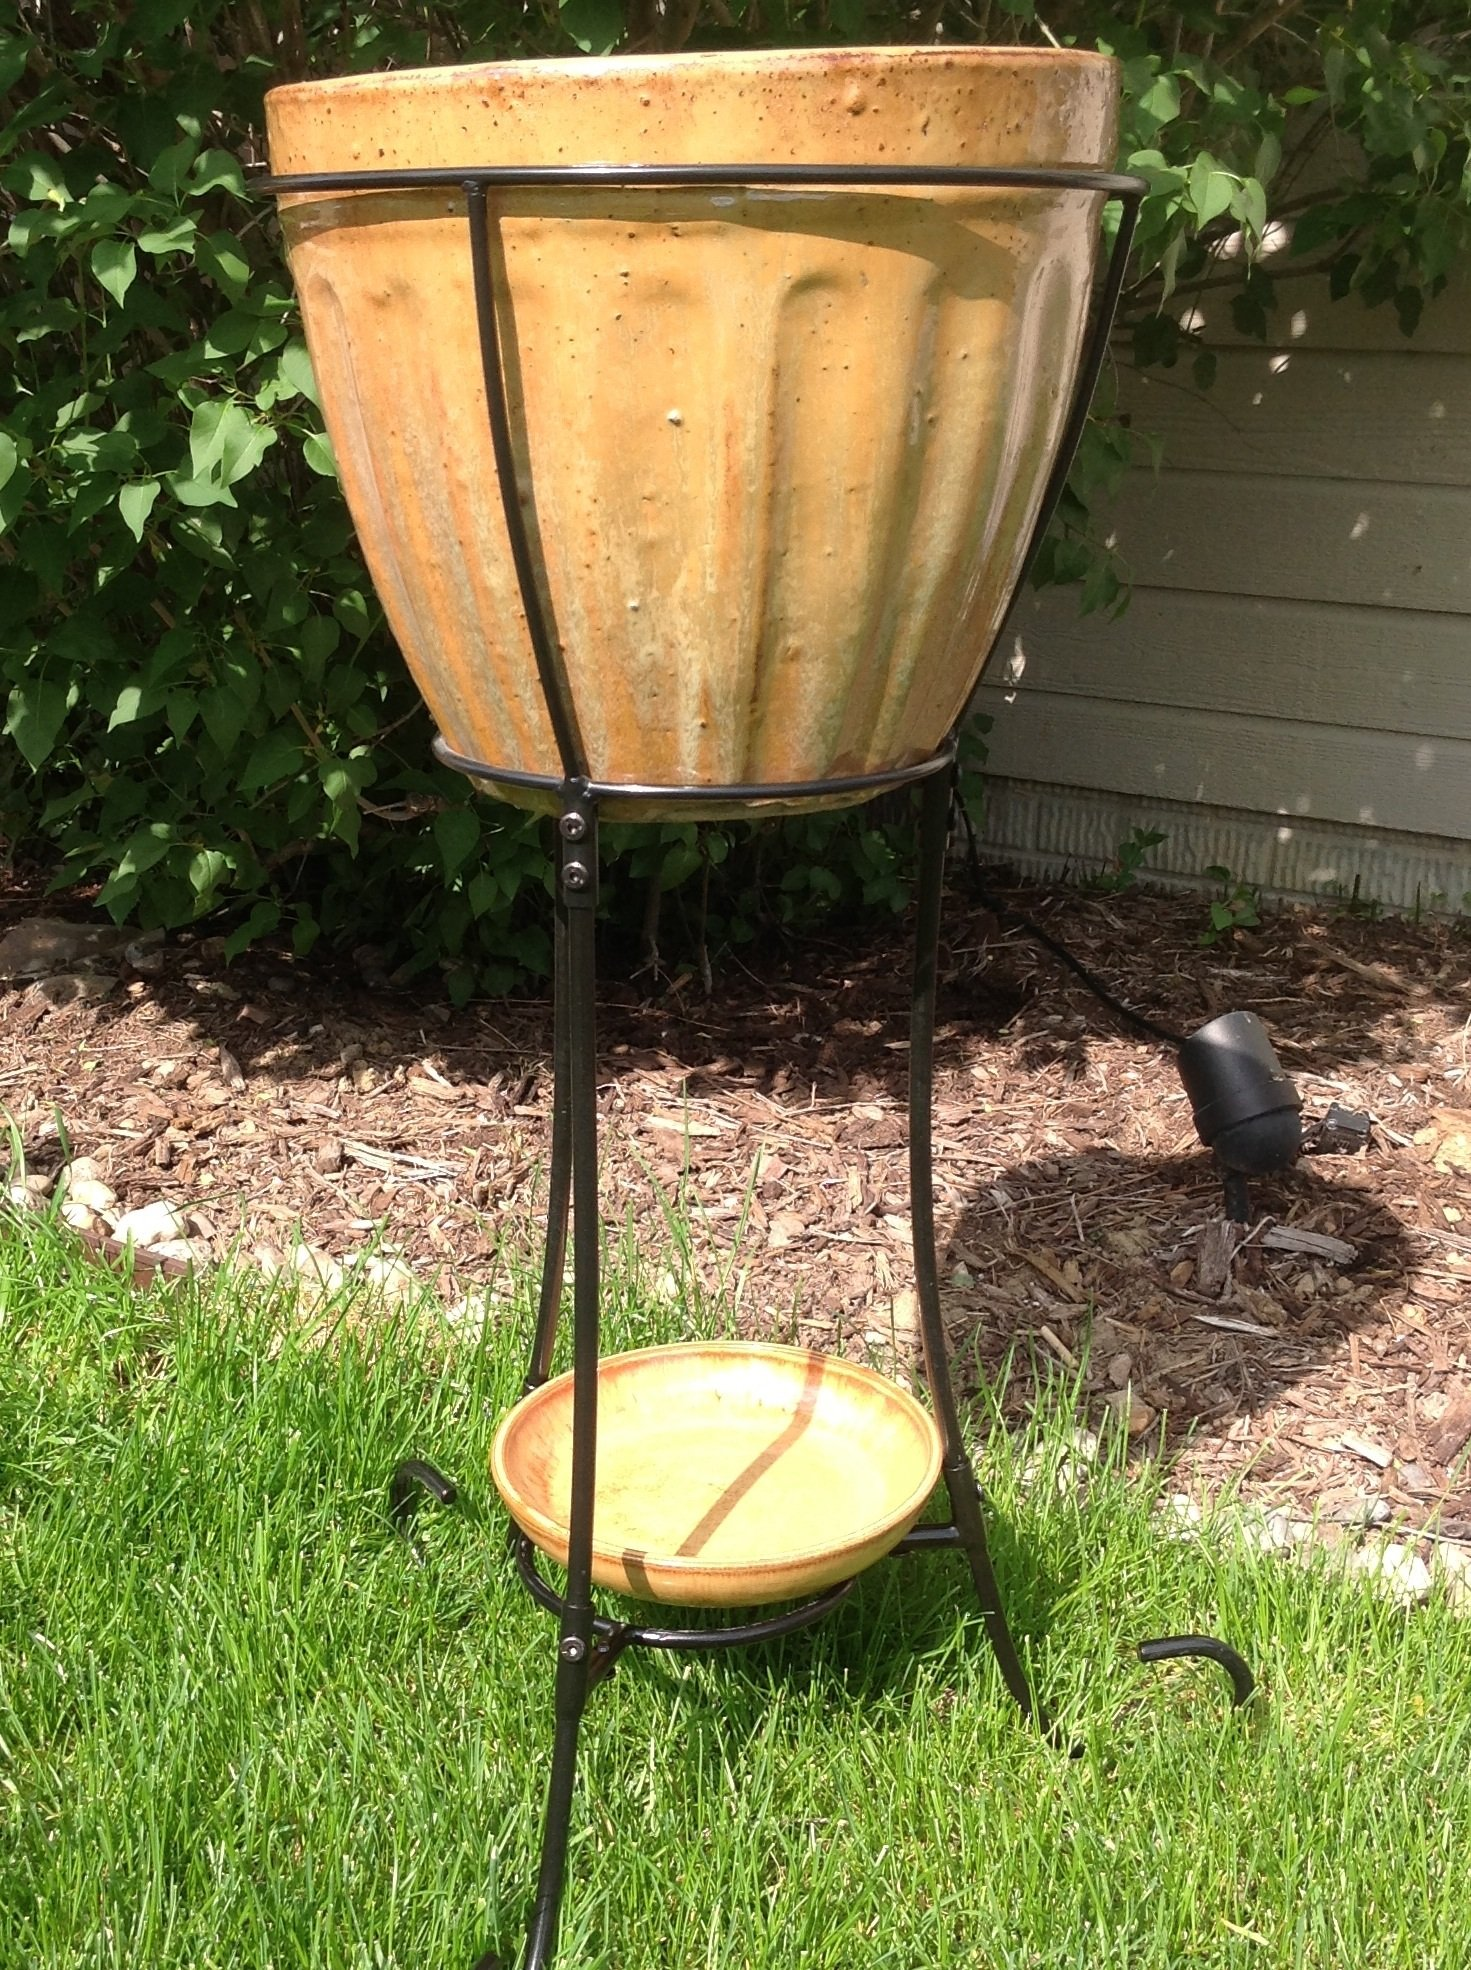 Large Elevated Outdoor Ceramic Urn or Cooler with a Stand - Burning Cream by Pebble Lane Living